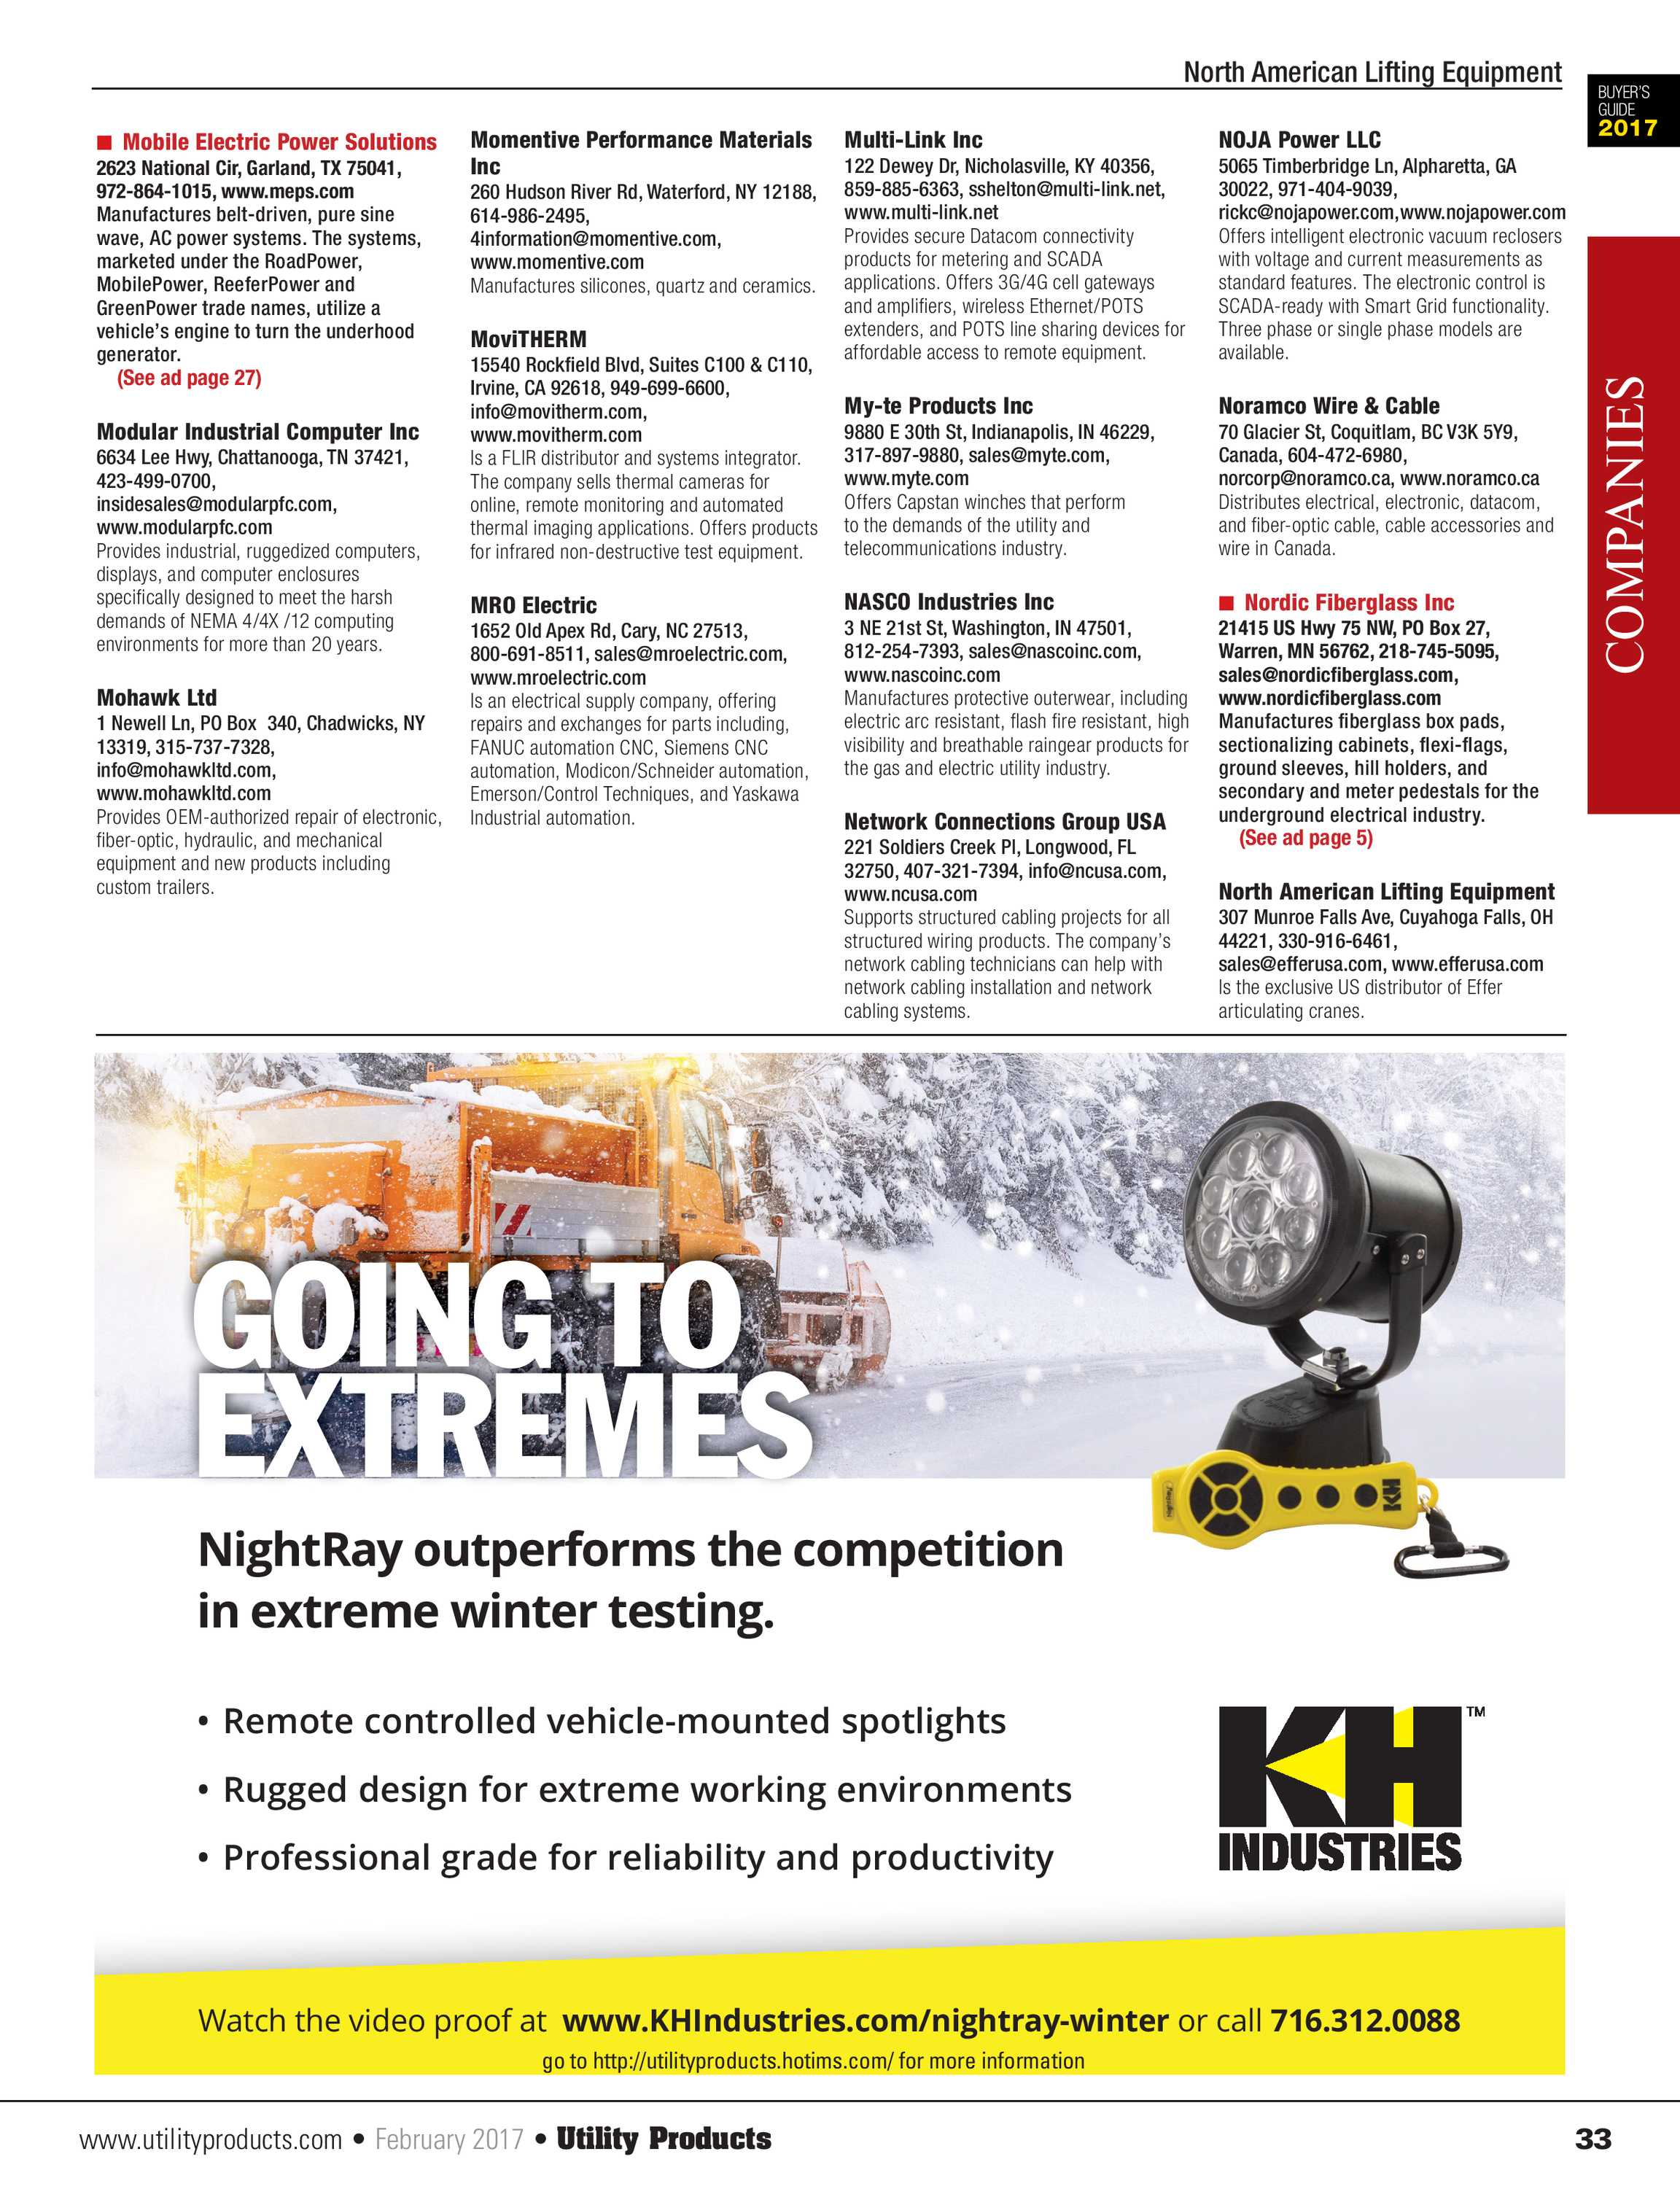 Utility Products - February 2017 - page 33